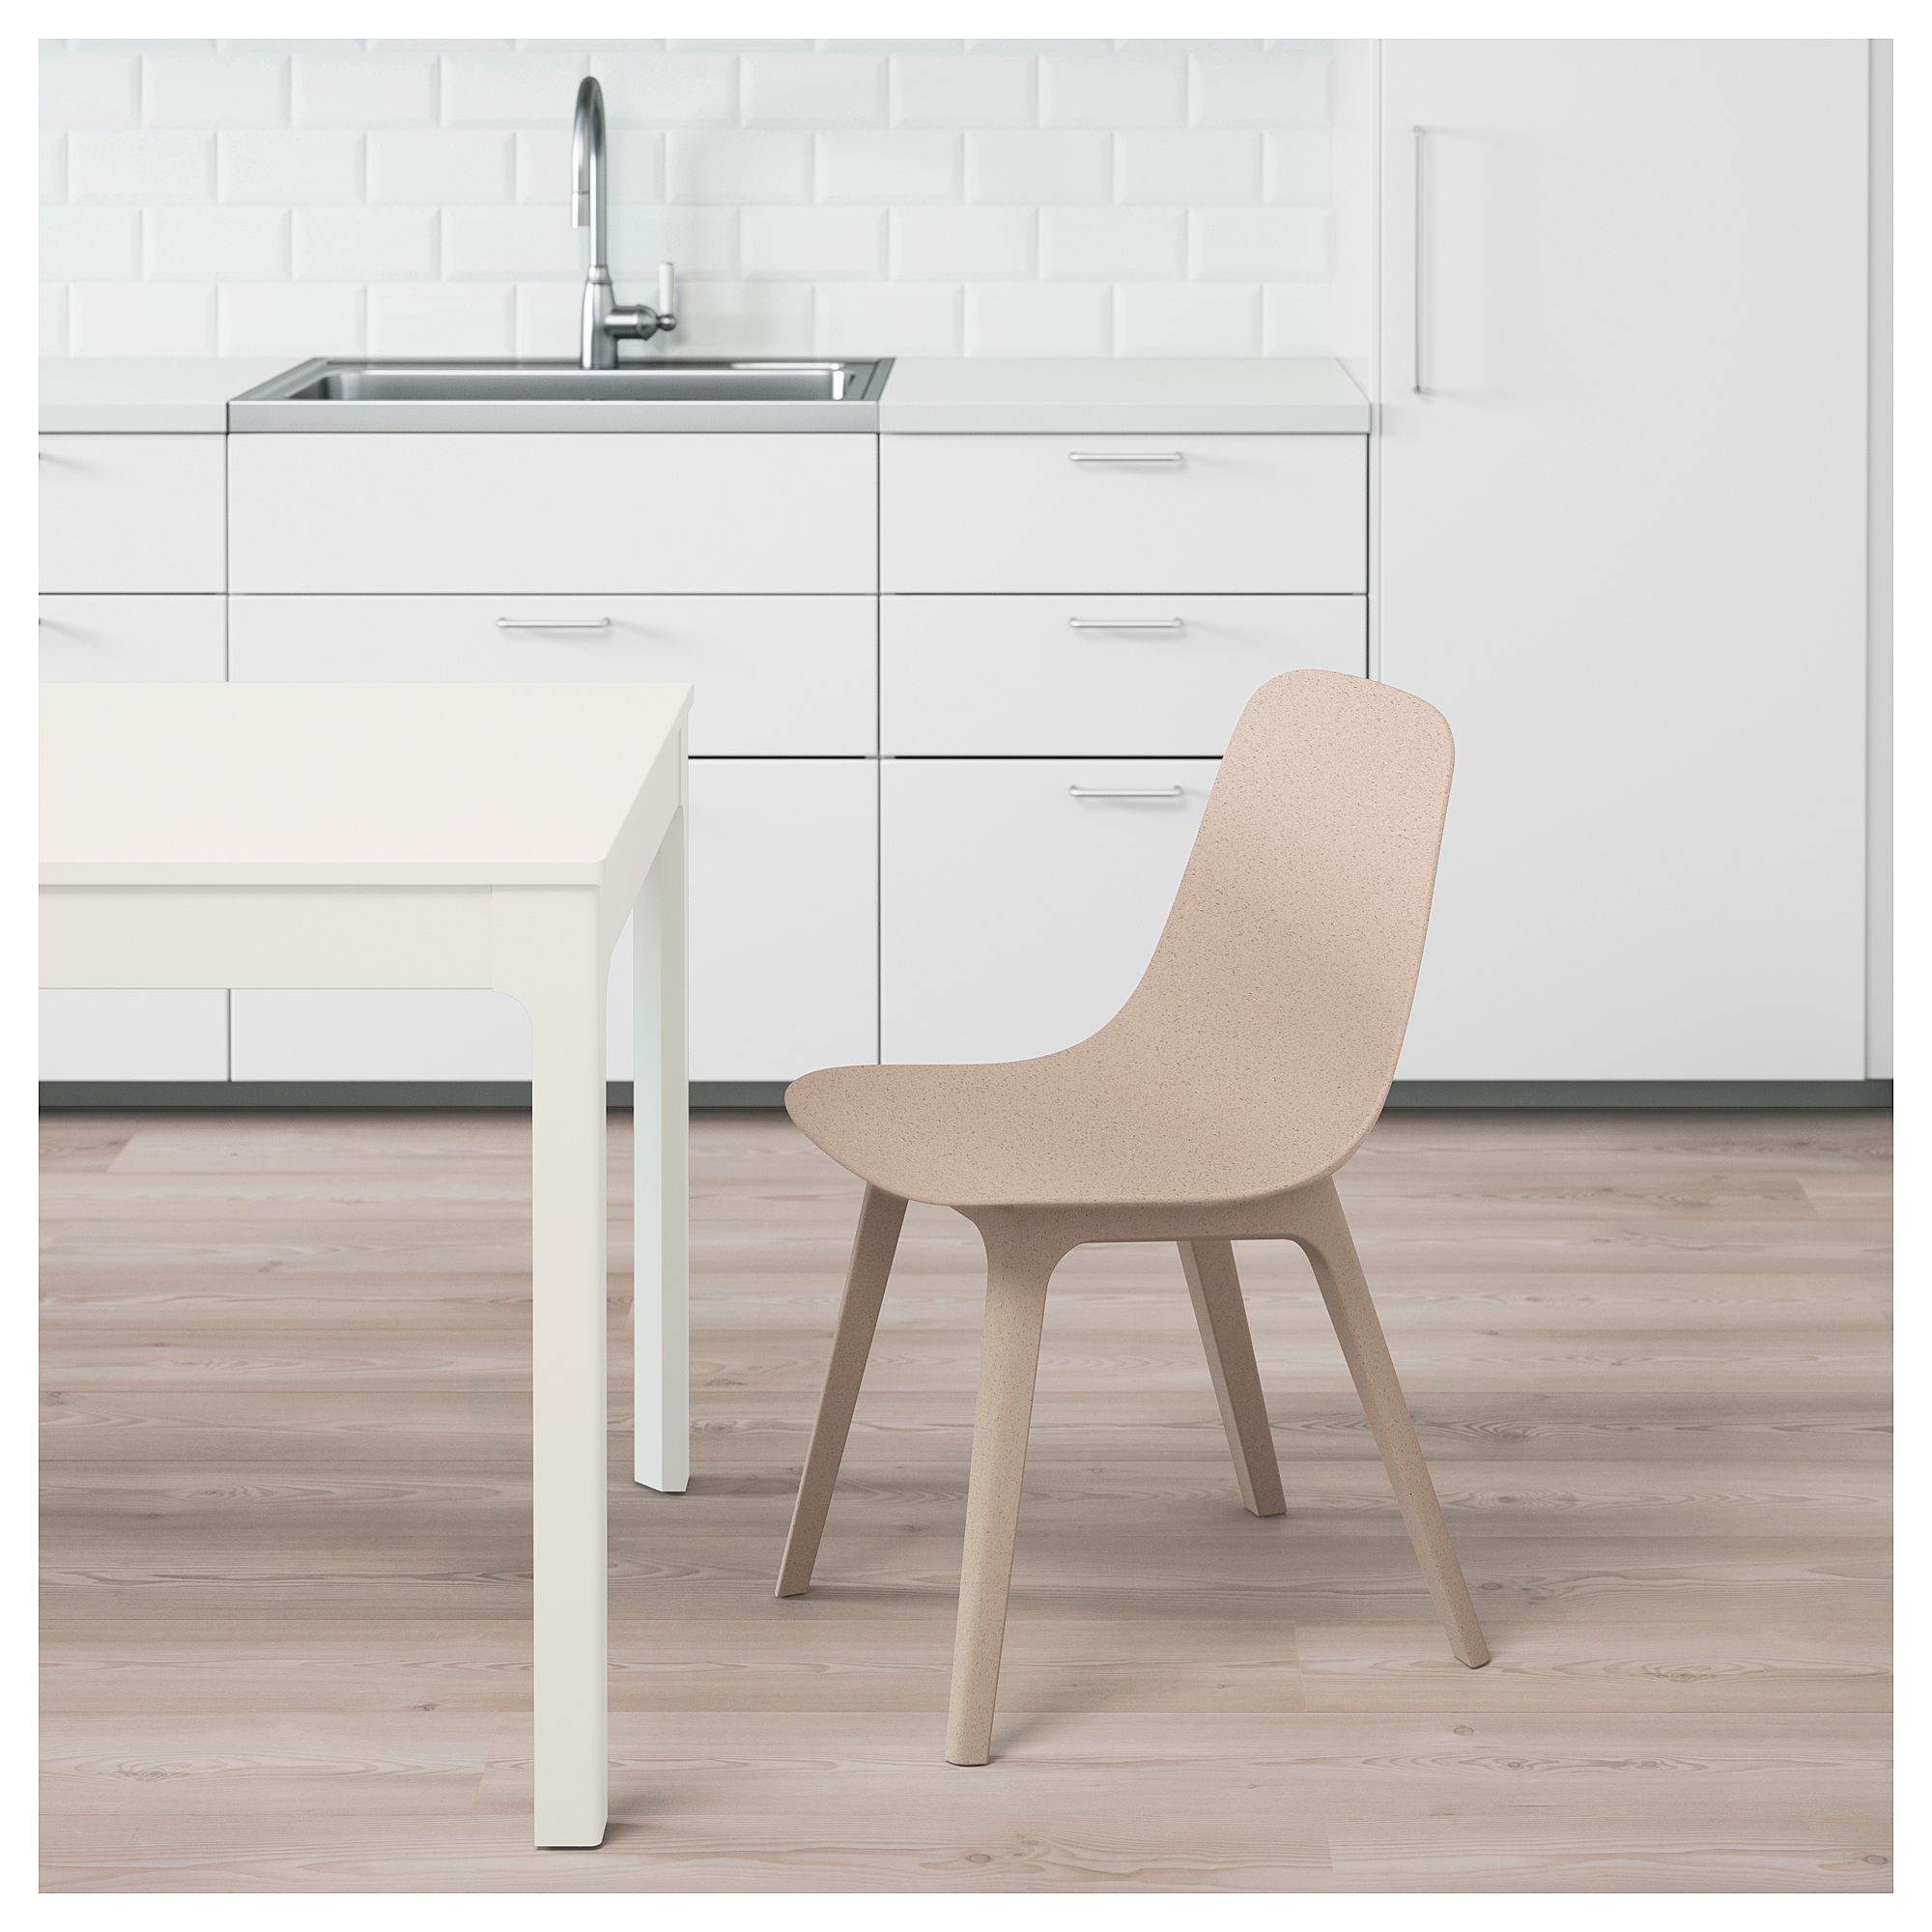 ODGER Chair white, beige Dining chairs for sale